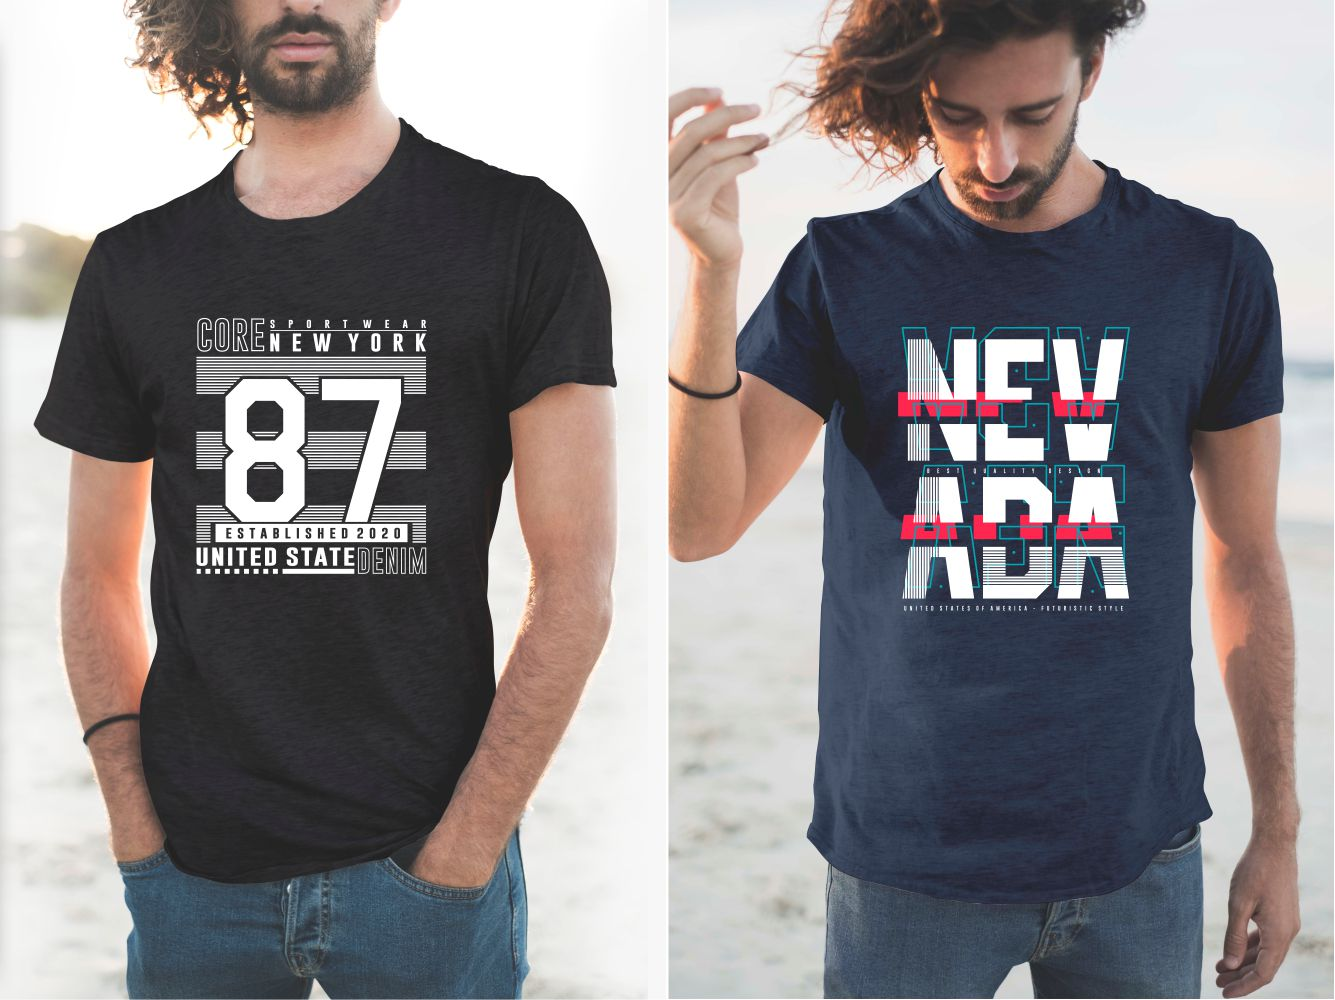 Black and blue T-shirts with modern lettering designs.